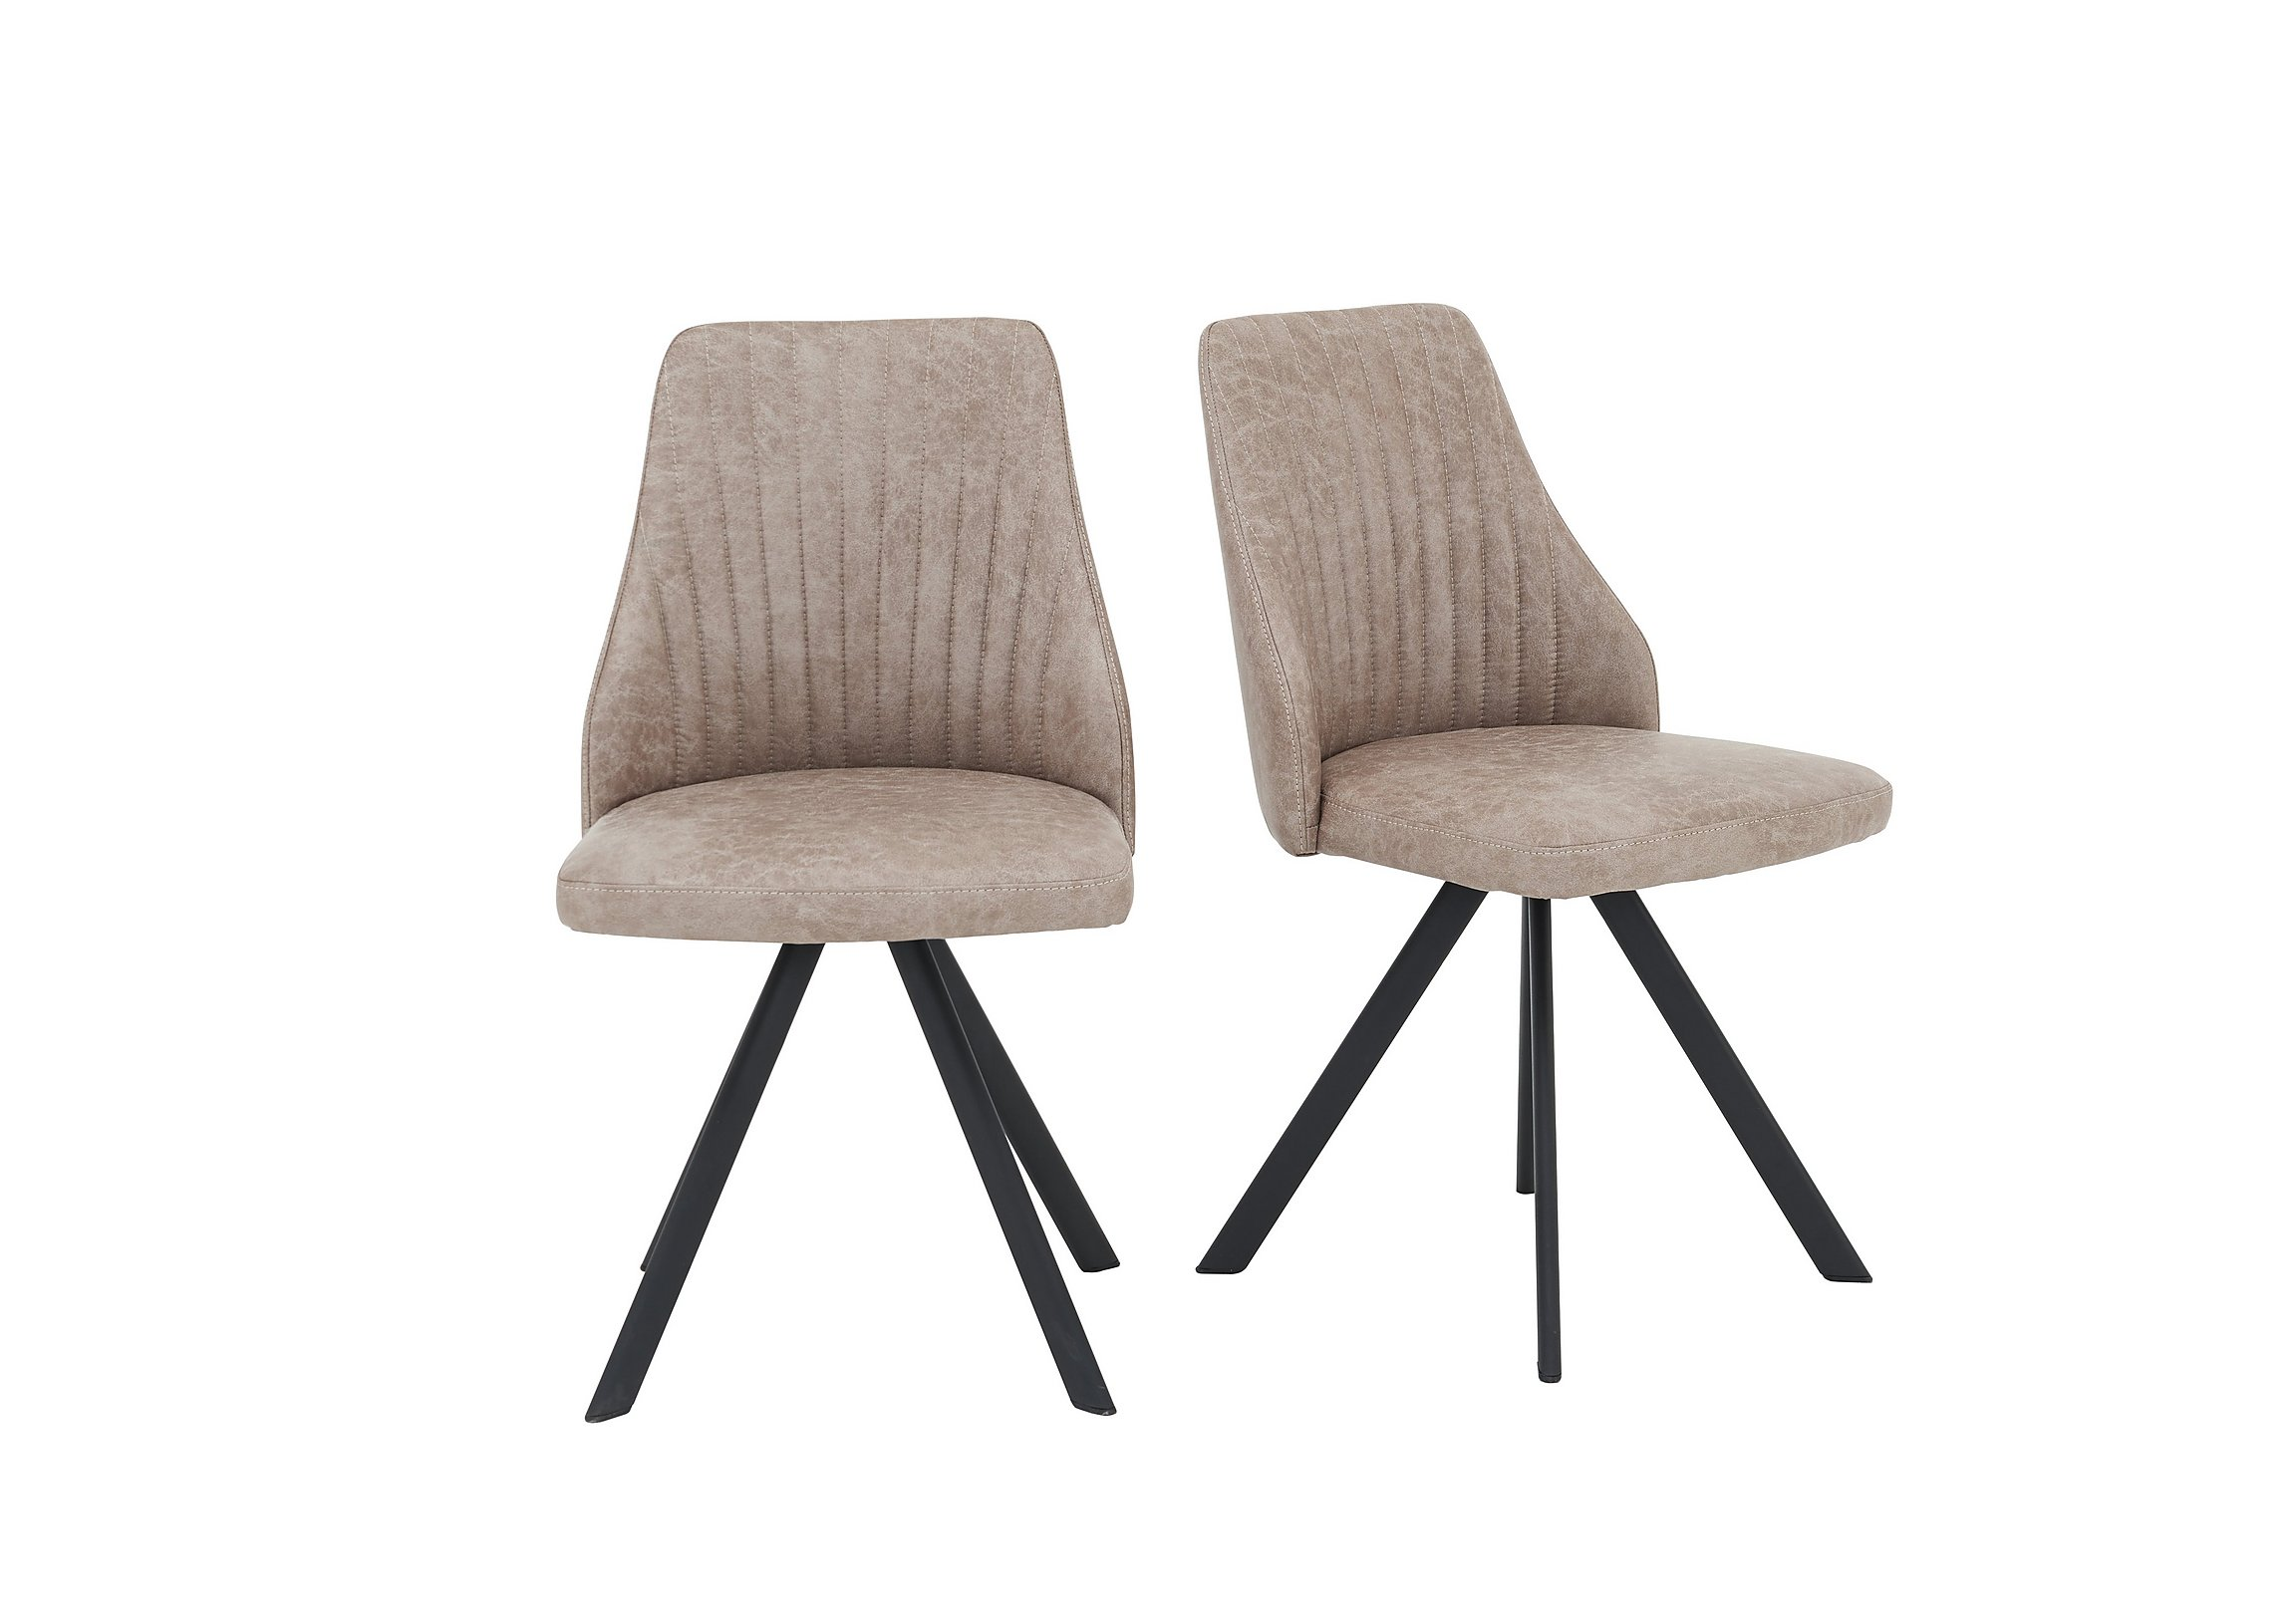 Aquila swivel dining chair loading images